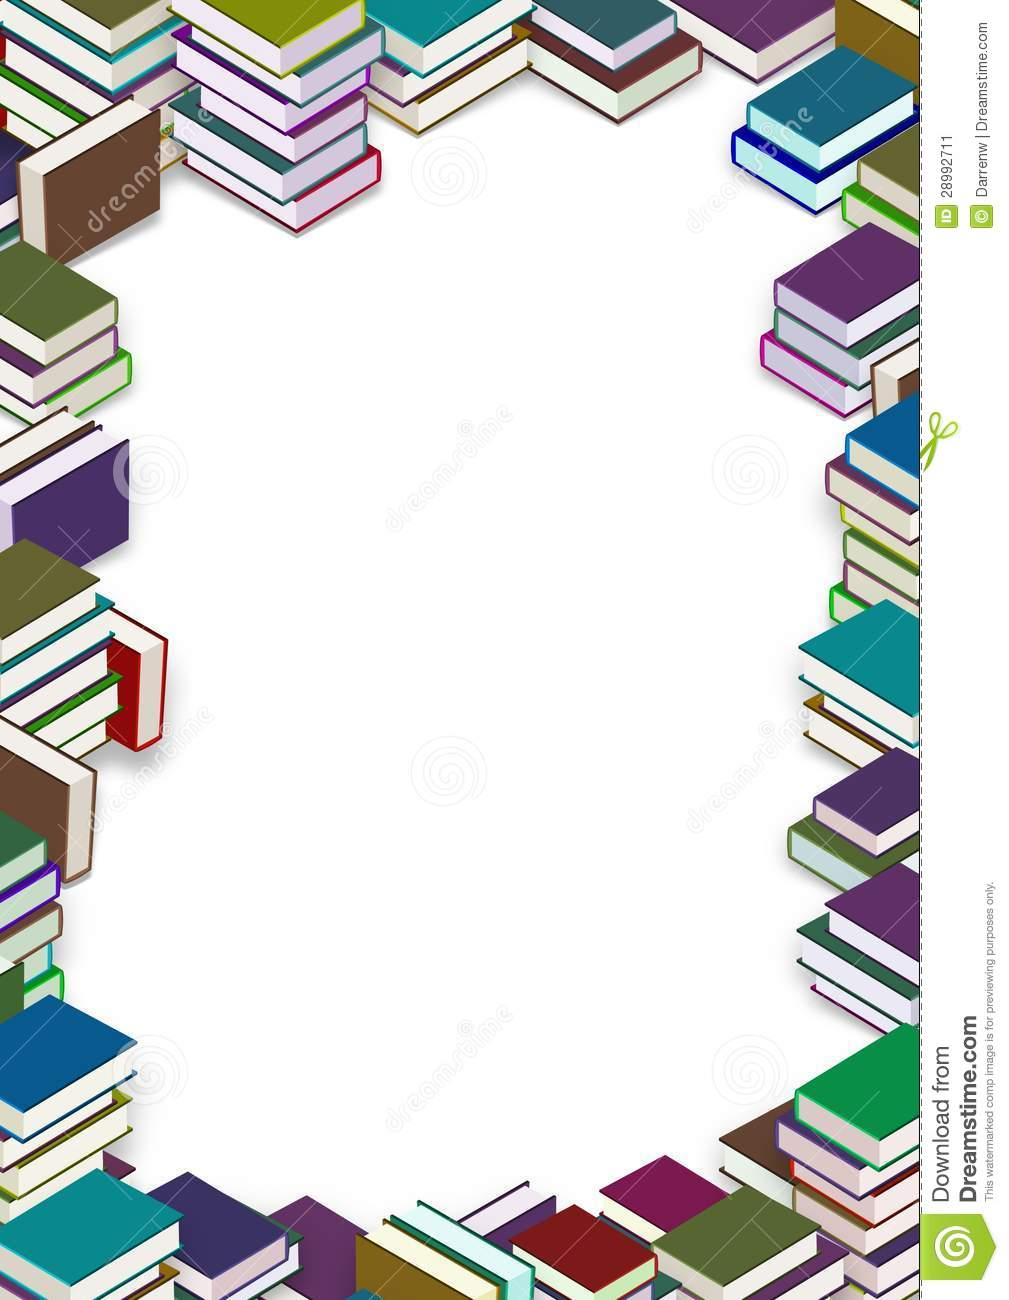 Book frame stock illustration. Illustration of border - 28992711